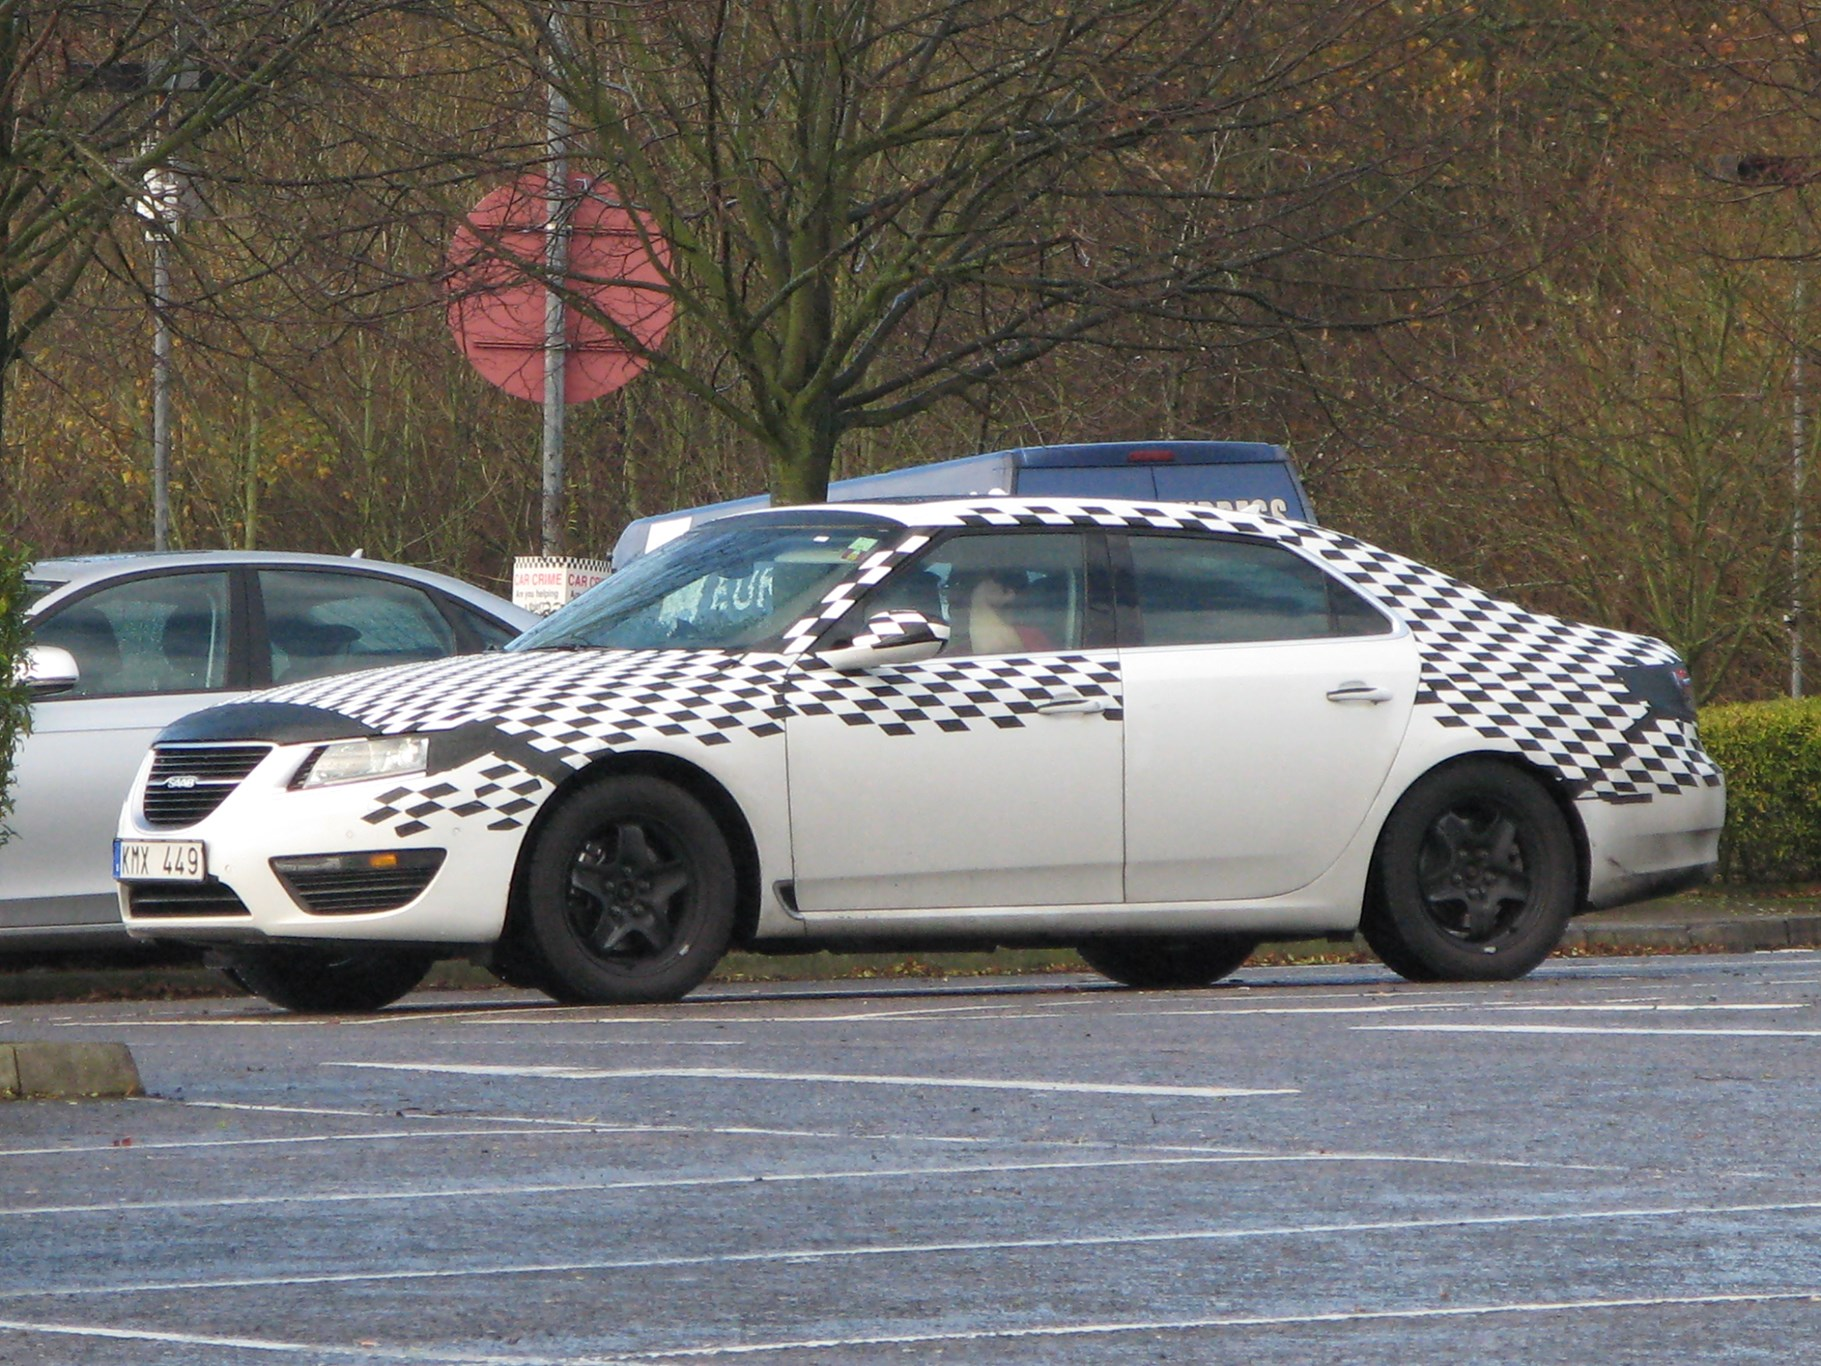 Saab 9 5 2010 Spotted Lapping The M25